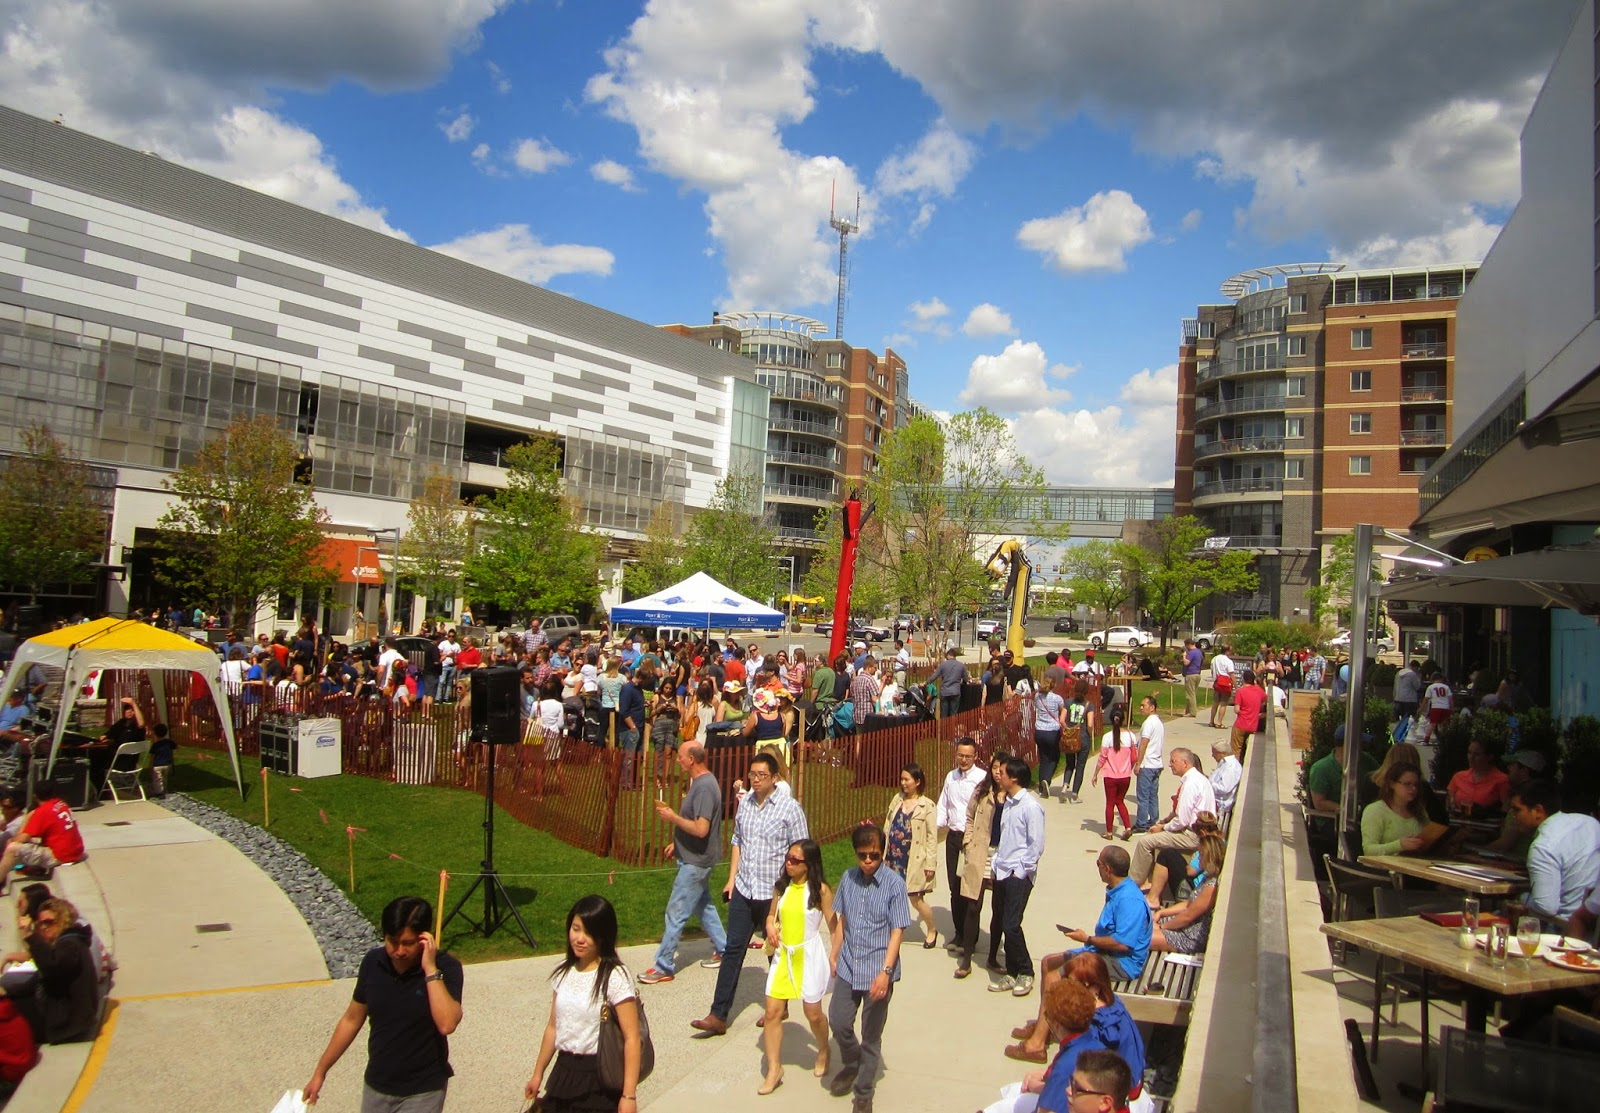 The Annandale Blog Taste Of Merrifield Brings Crowds To Mosaic District